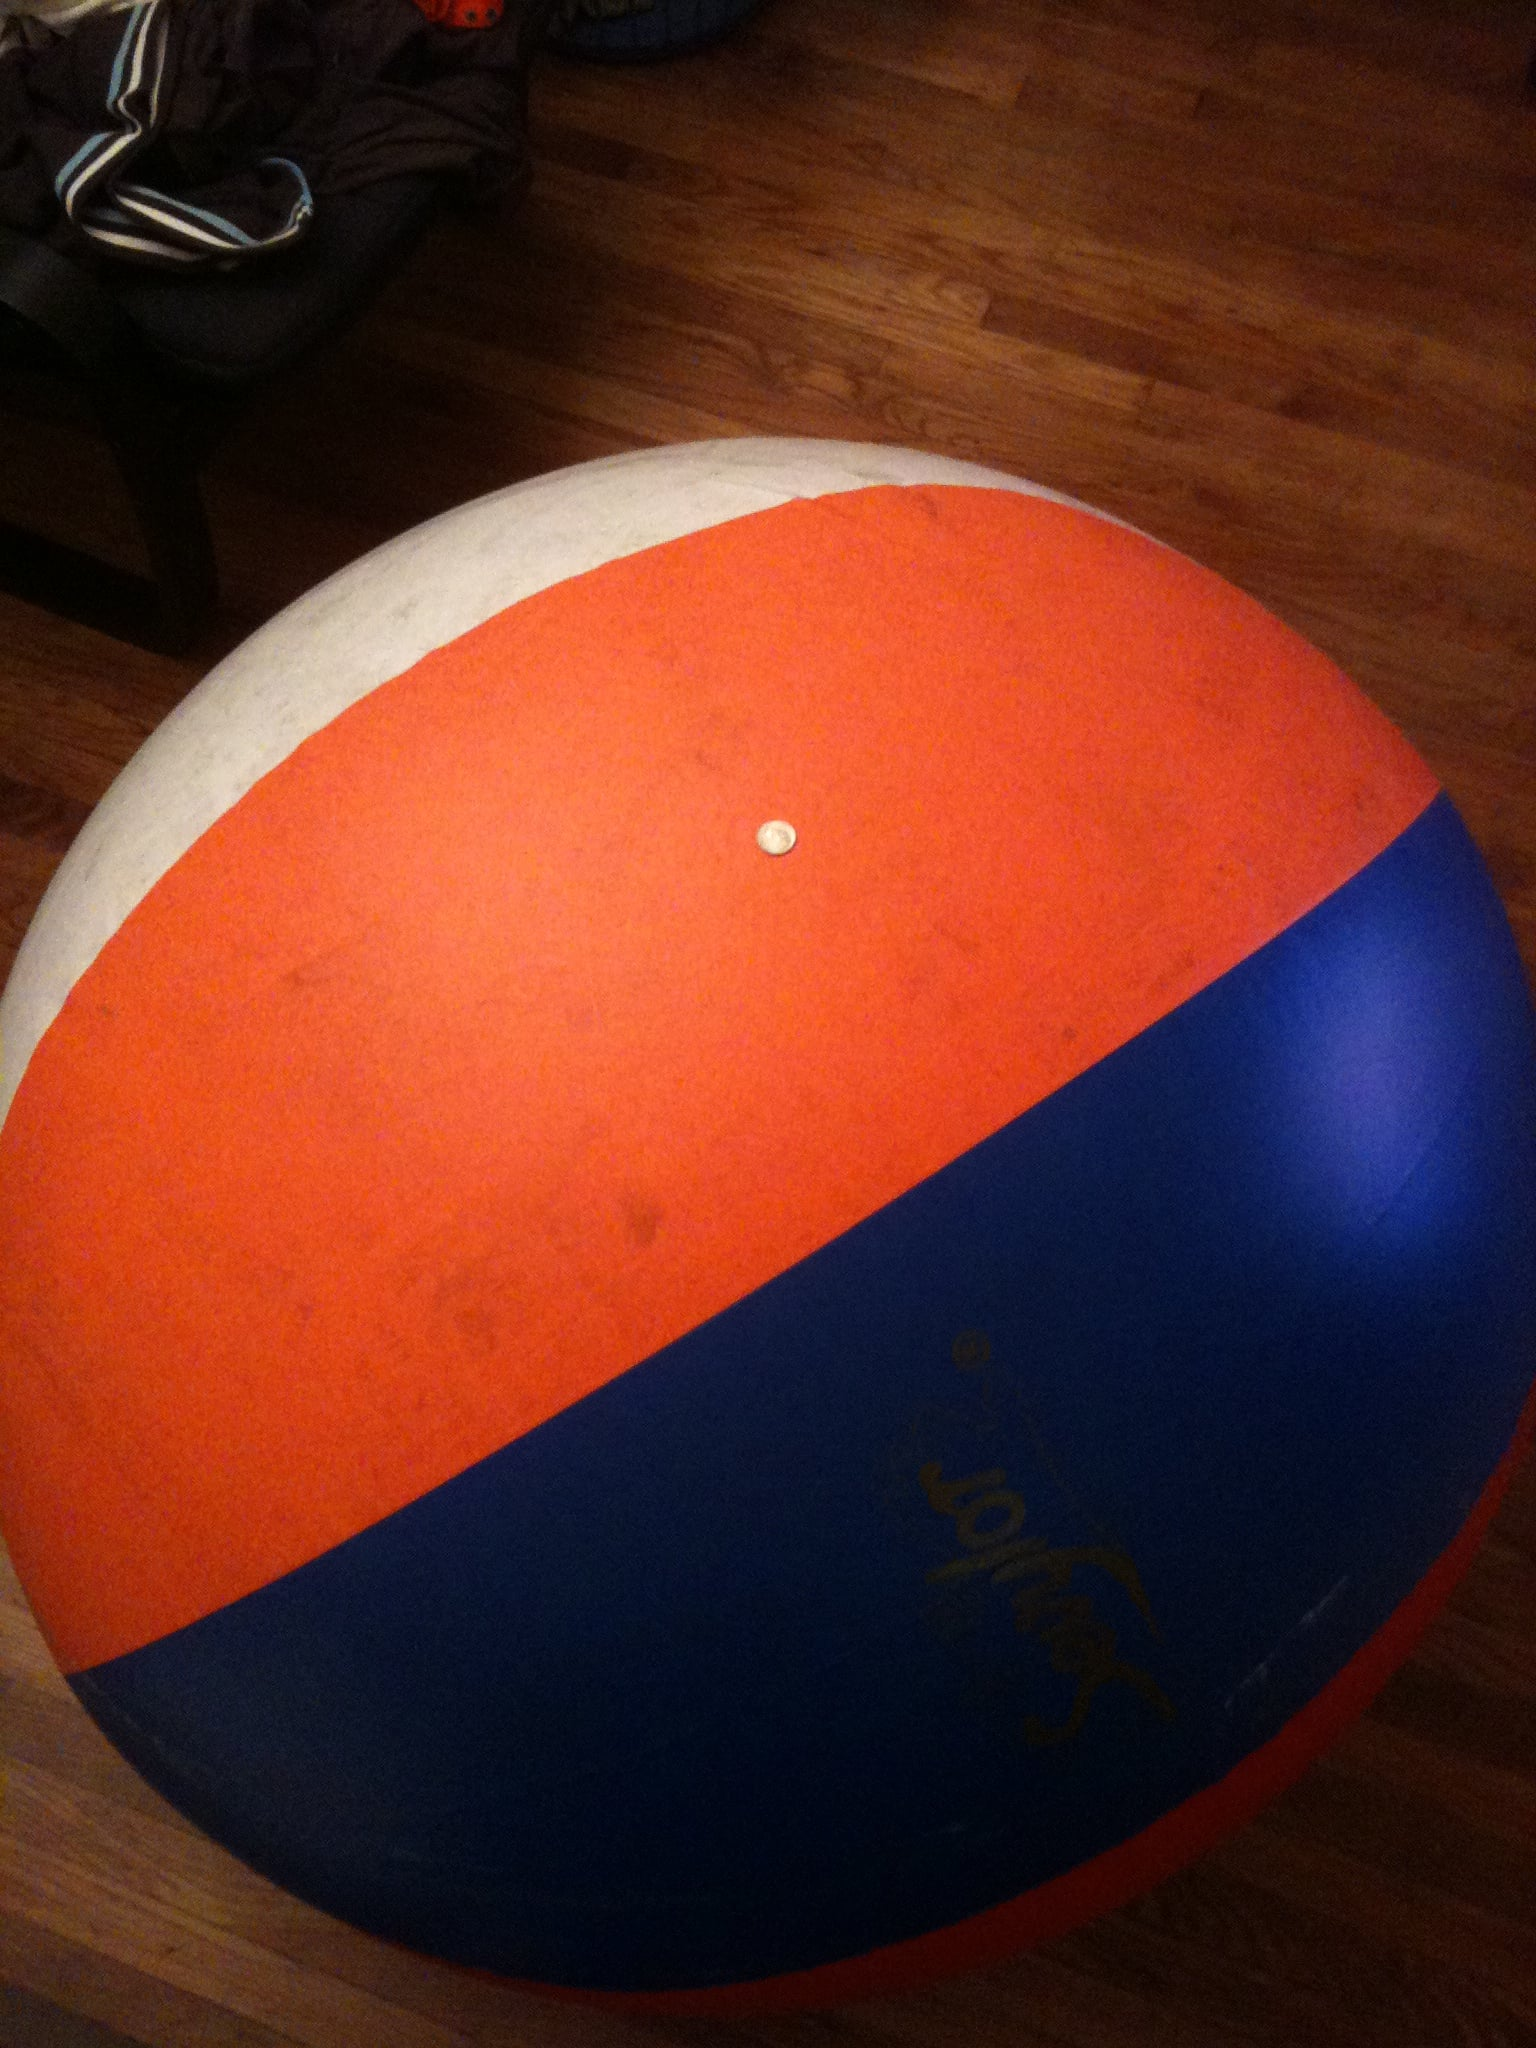 Step 1: Find and inflate a giant beach ball